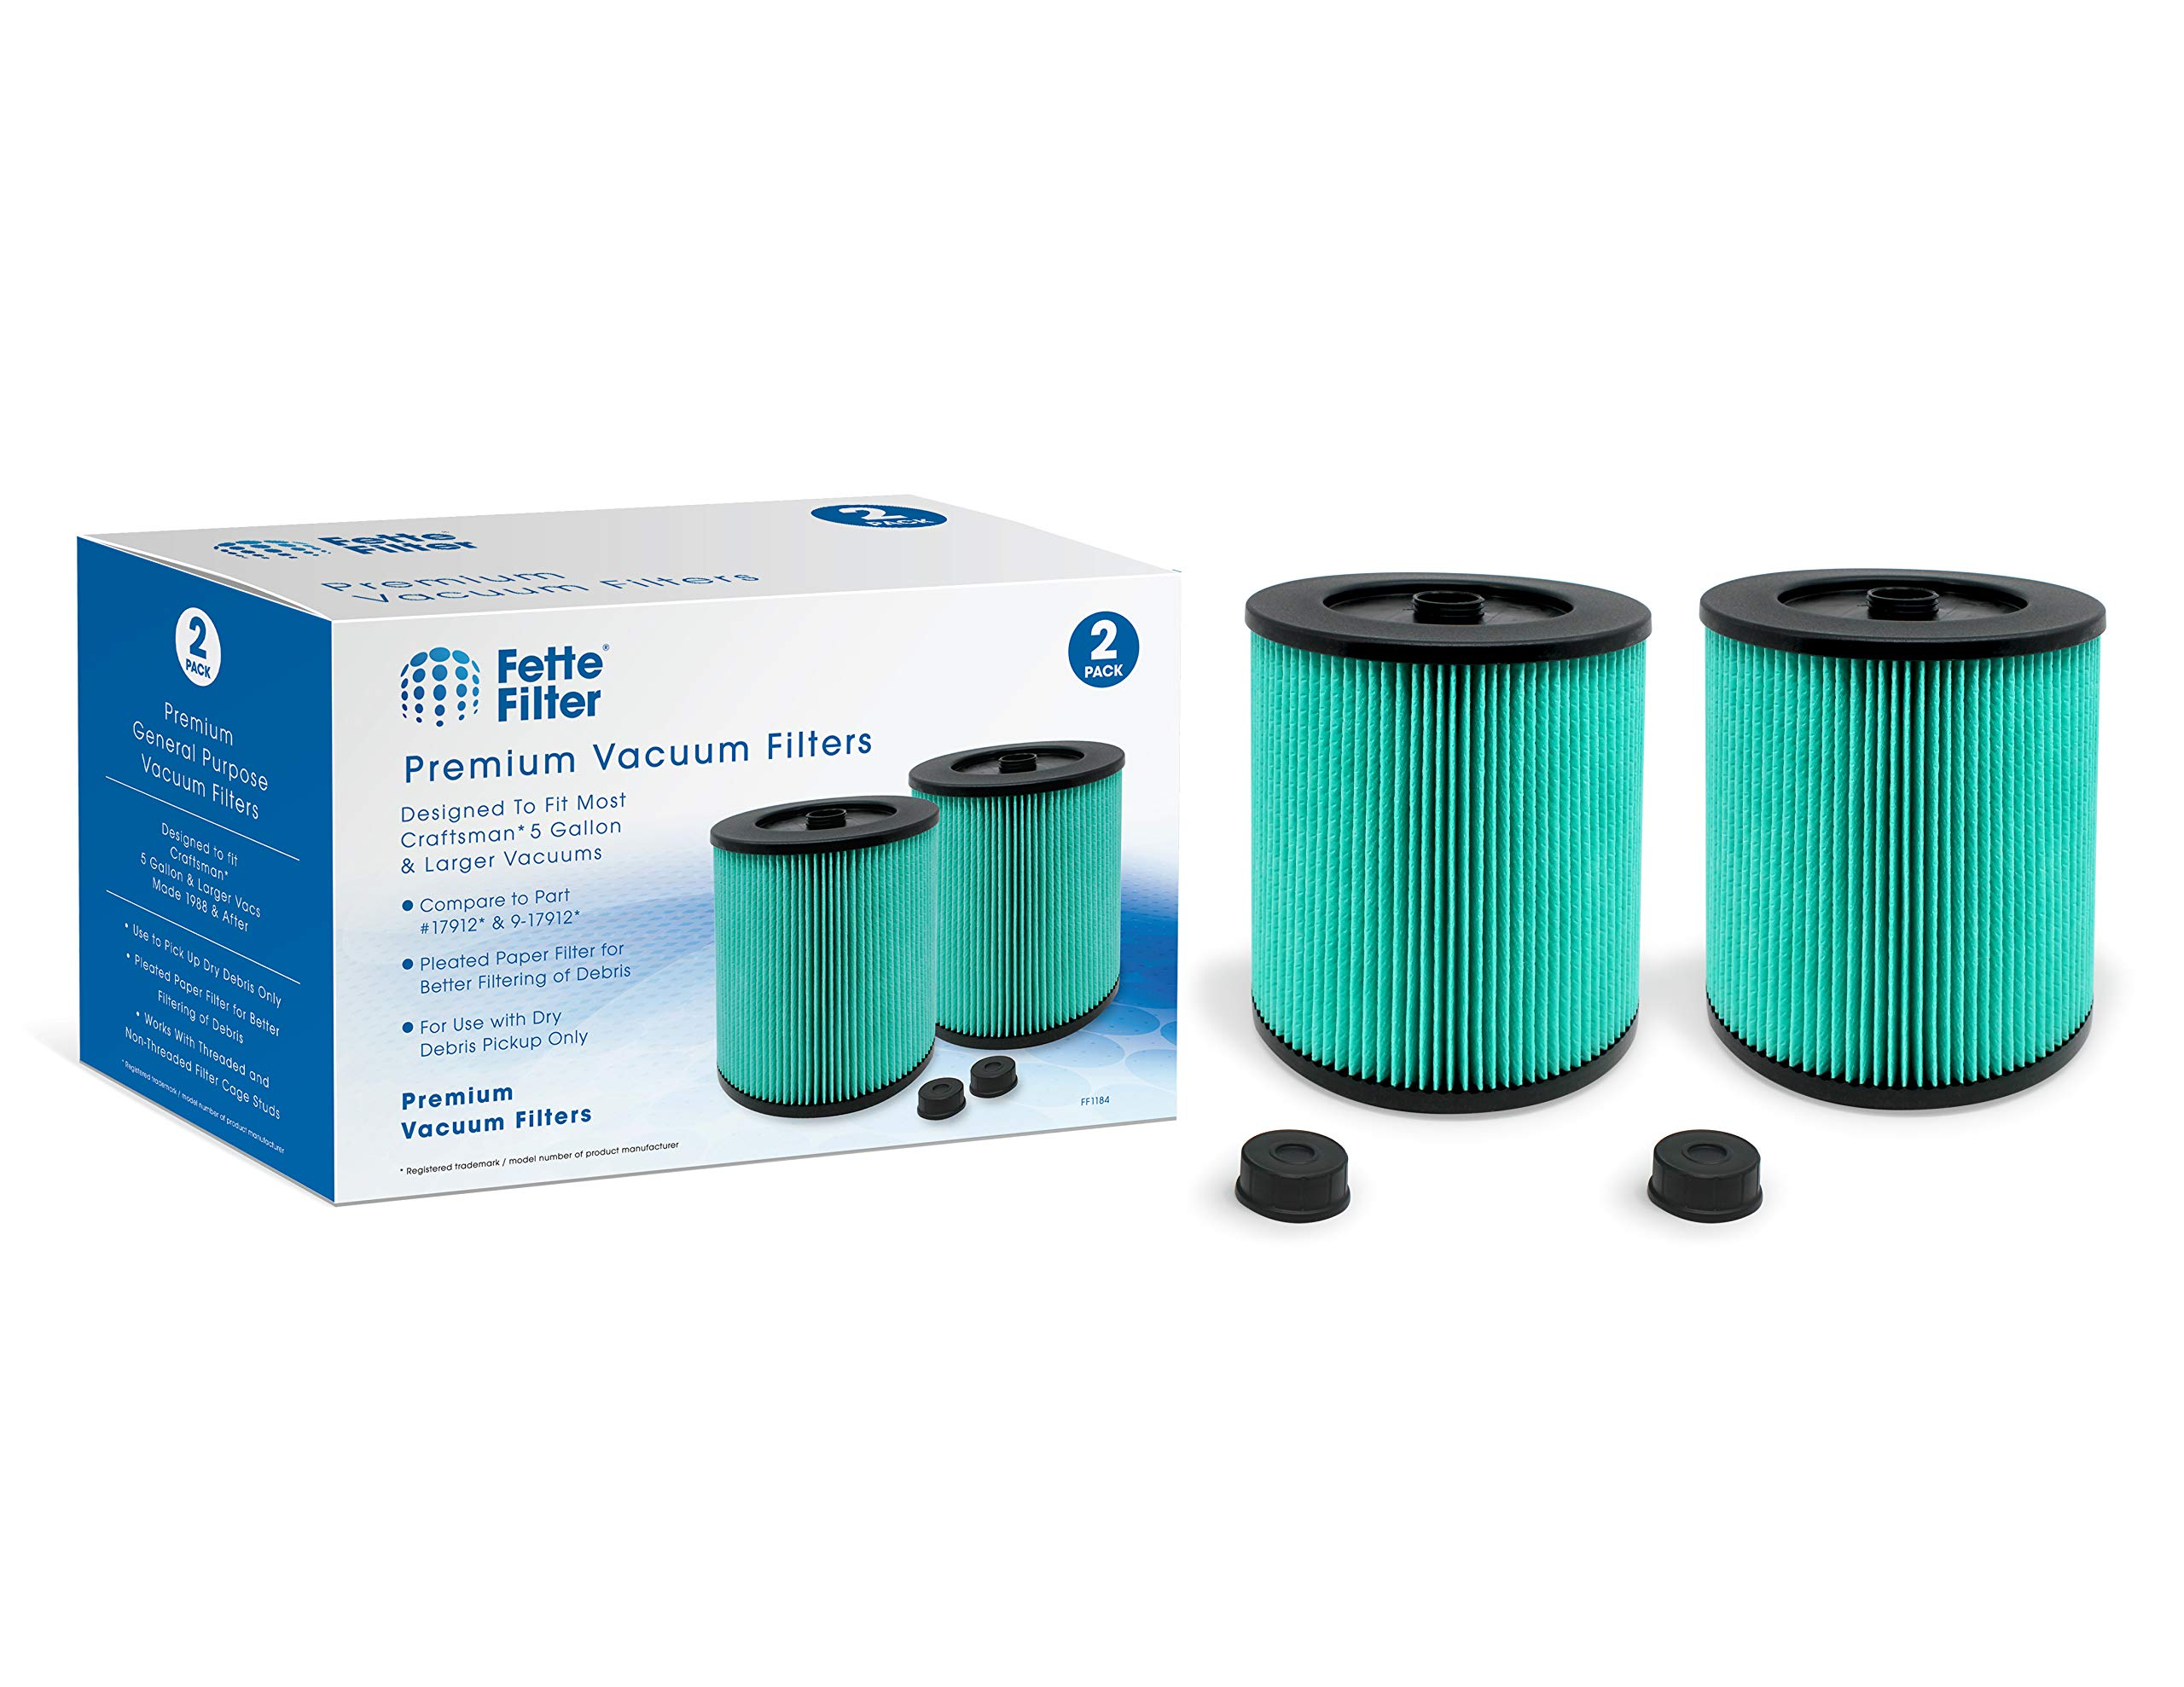 Fette Filter - 17912 & 9-17912 HEPA Vacuum Filter with High Efficiency Particle Air Filter Material Compatible with Craftsman. Compare to Part # 17912 & 9-17912. Pack of 2